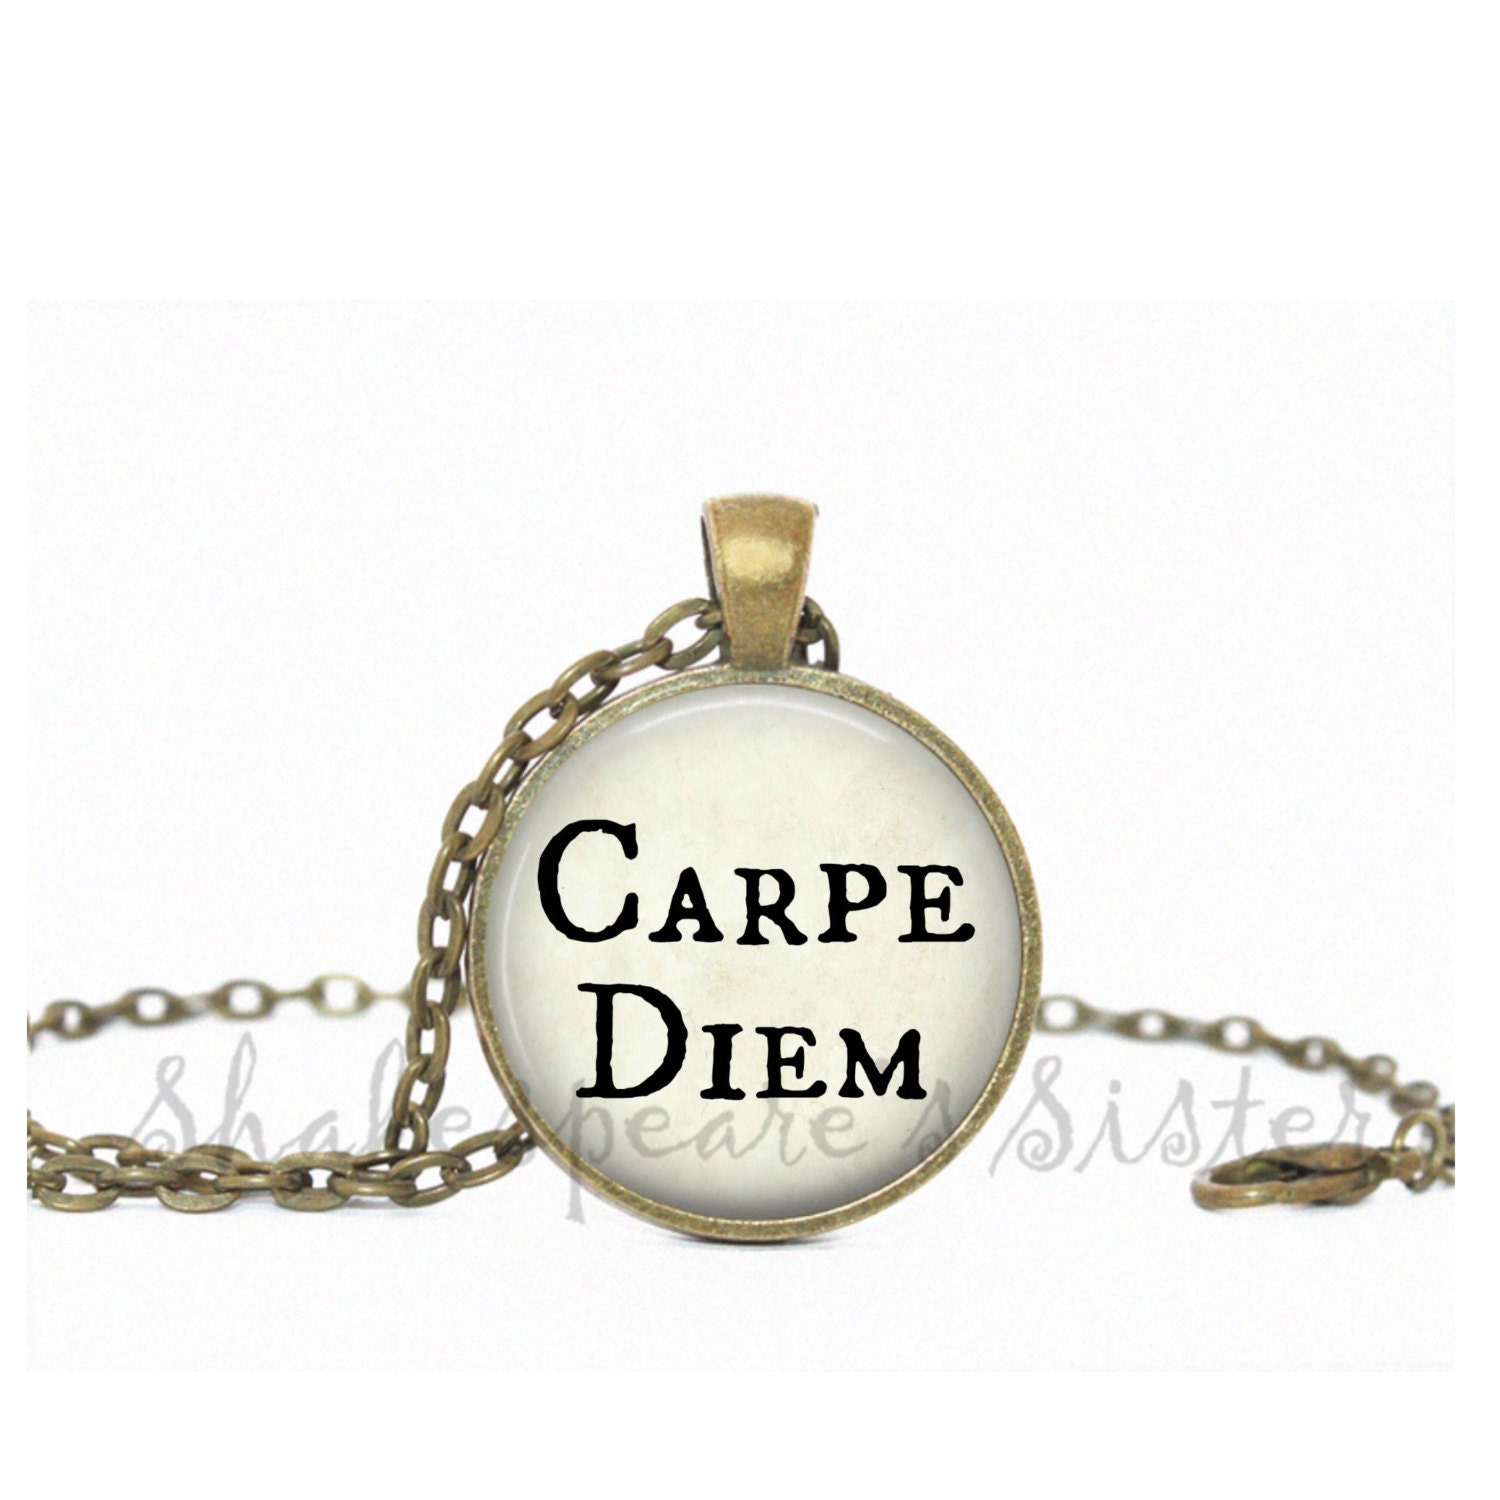 carpe diem inspirational necklace affirmation jewelry